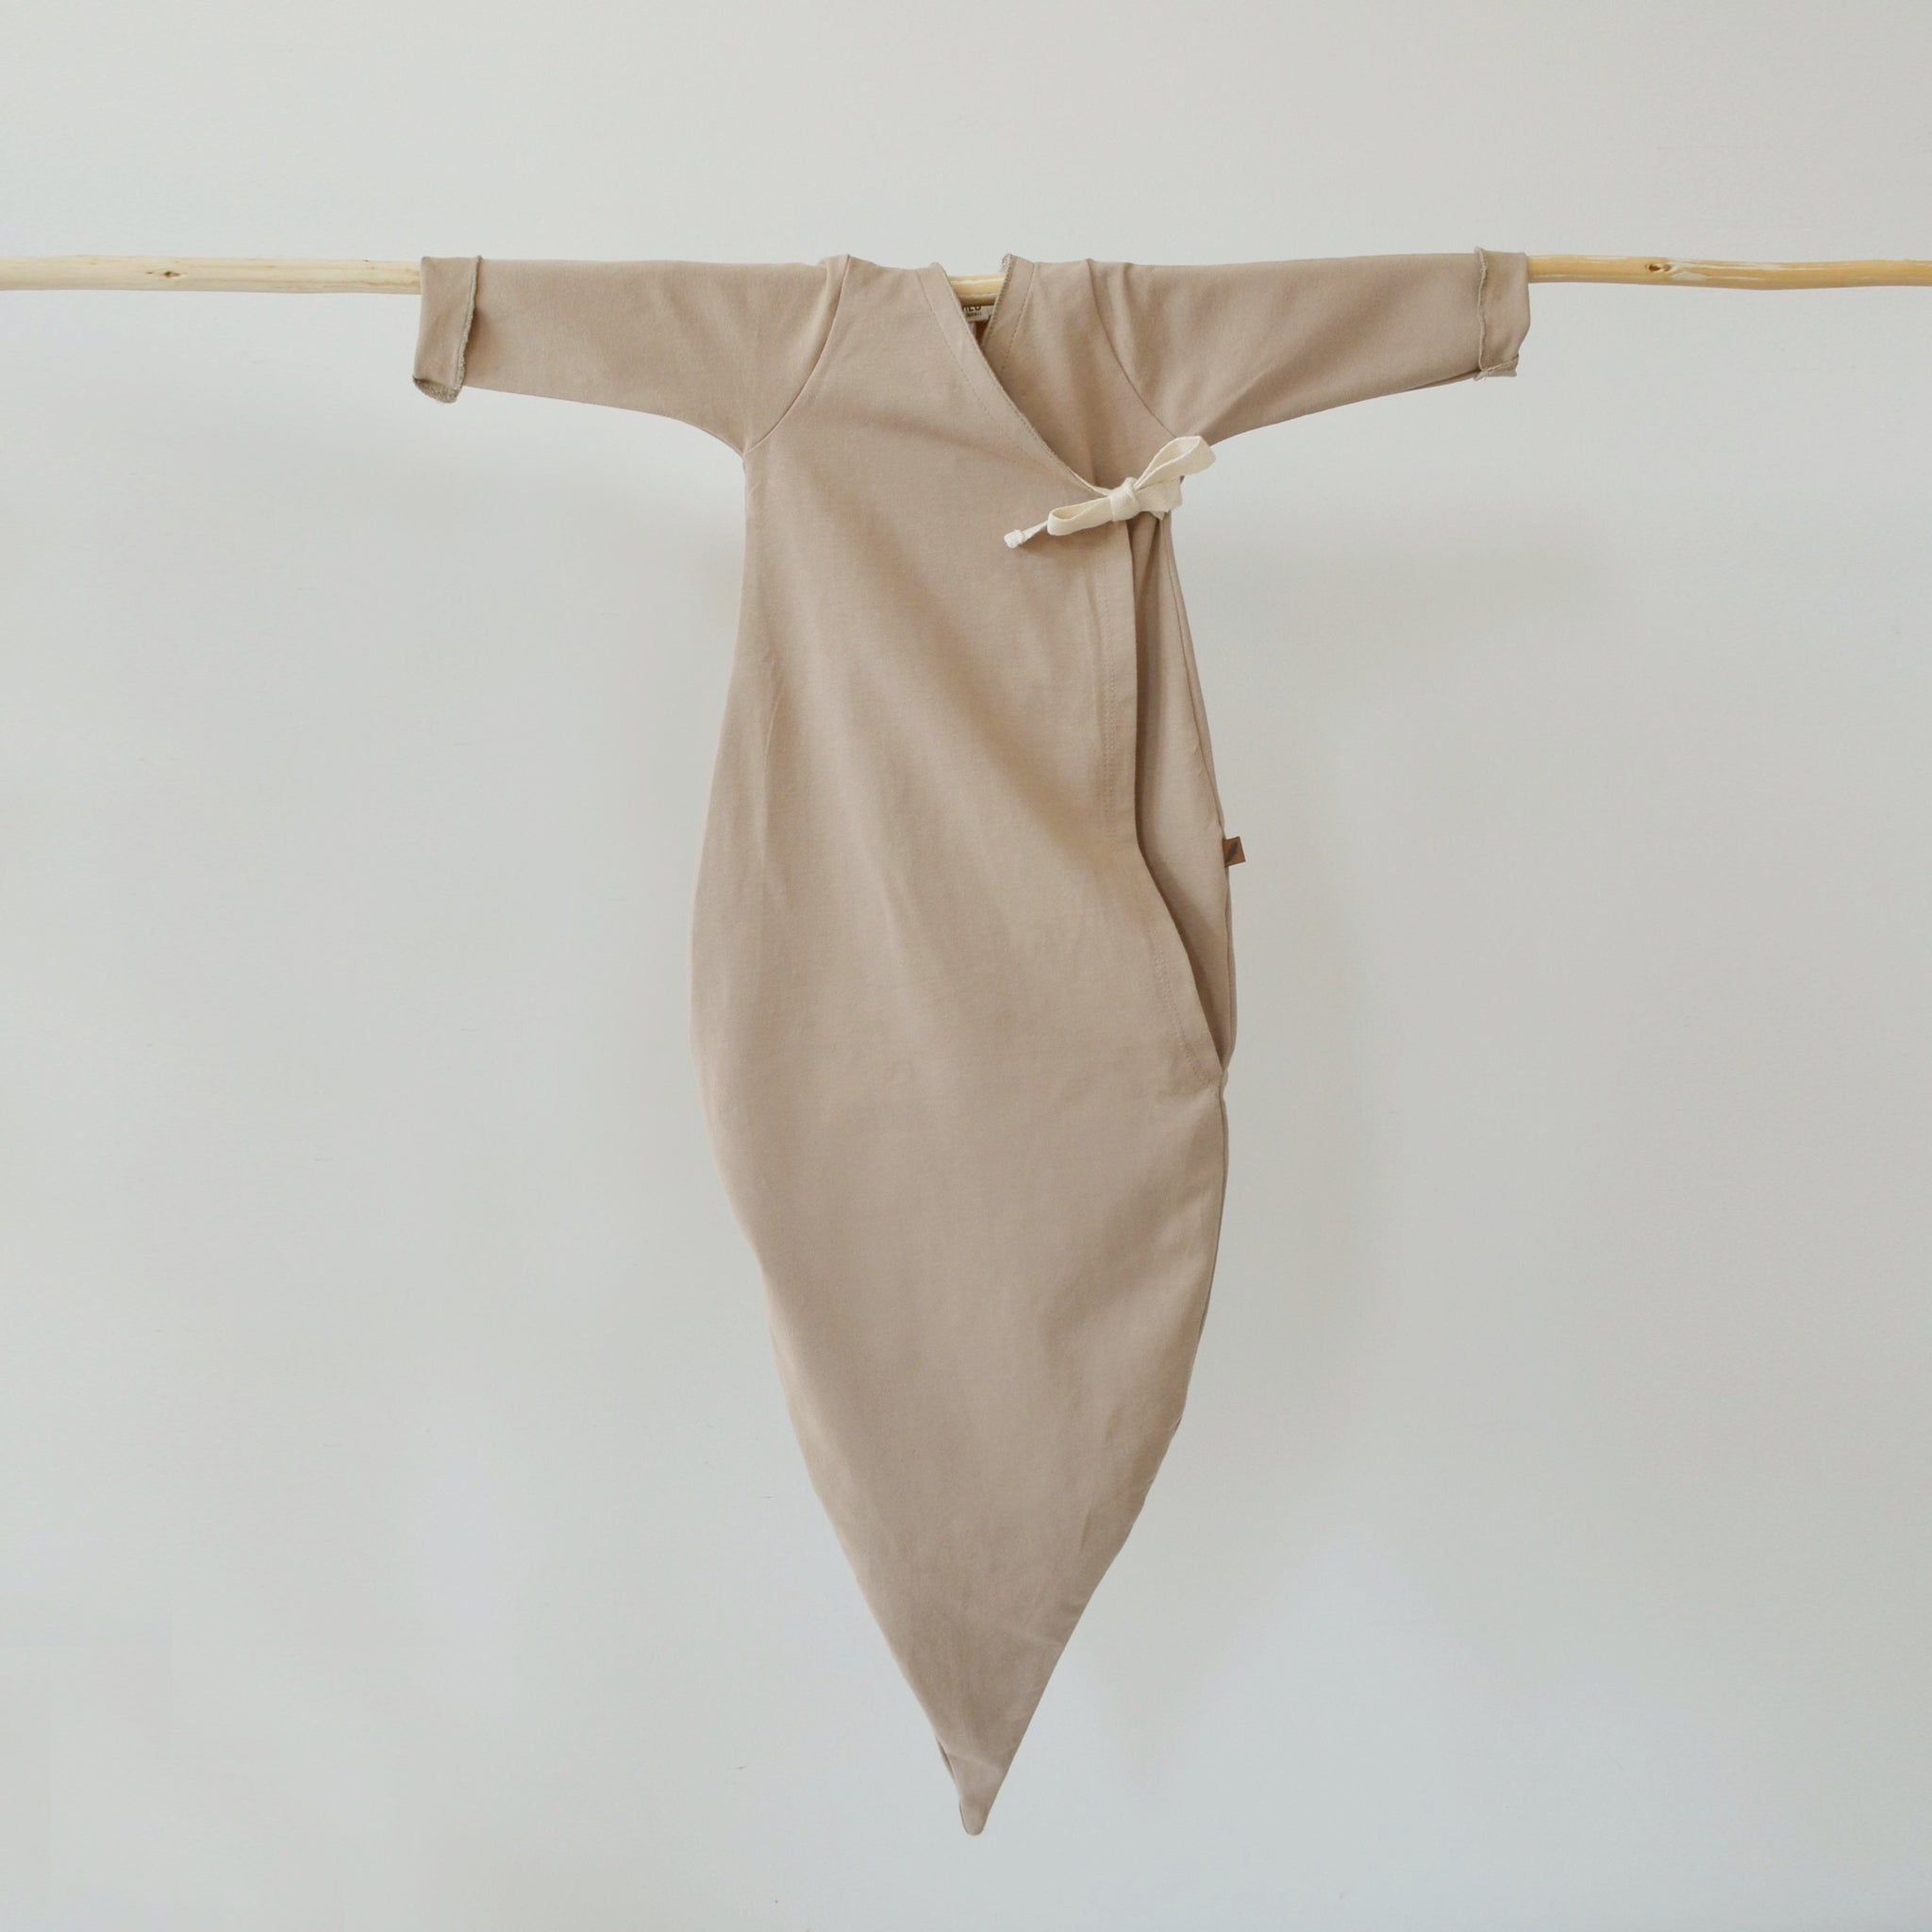 KidWild Organics organic cotton baby kimono gown in dune (neutral beige) hanging on wooden rod